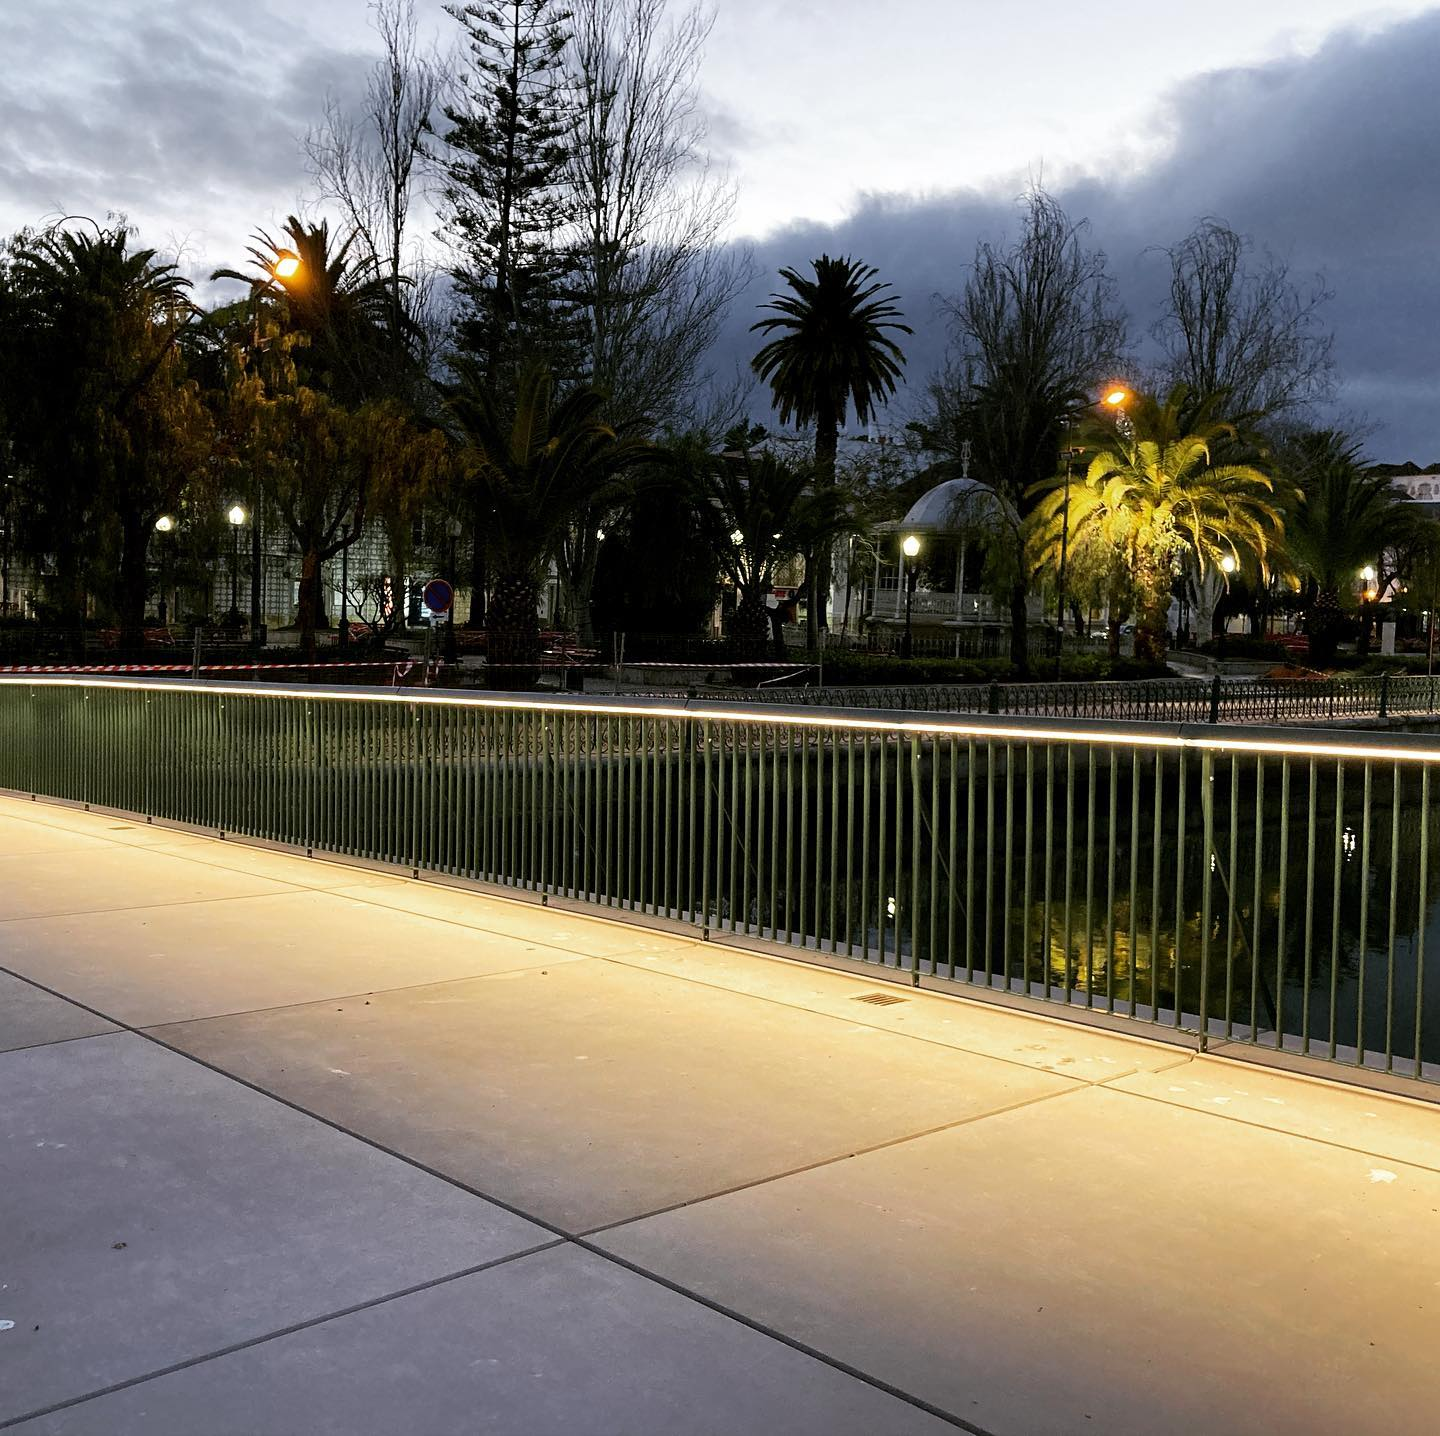 Works nearing completion in Tavira. A new bridge designed by @appletondomingos for the people and bikes of this beautiful city in the south of Portugal. Lighting Design by Filamento #lightingdesign #womeninlightingdesign #womeninlightingportugal #publicspacedesign